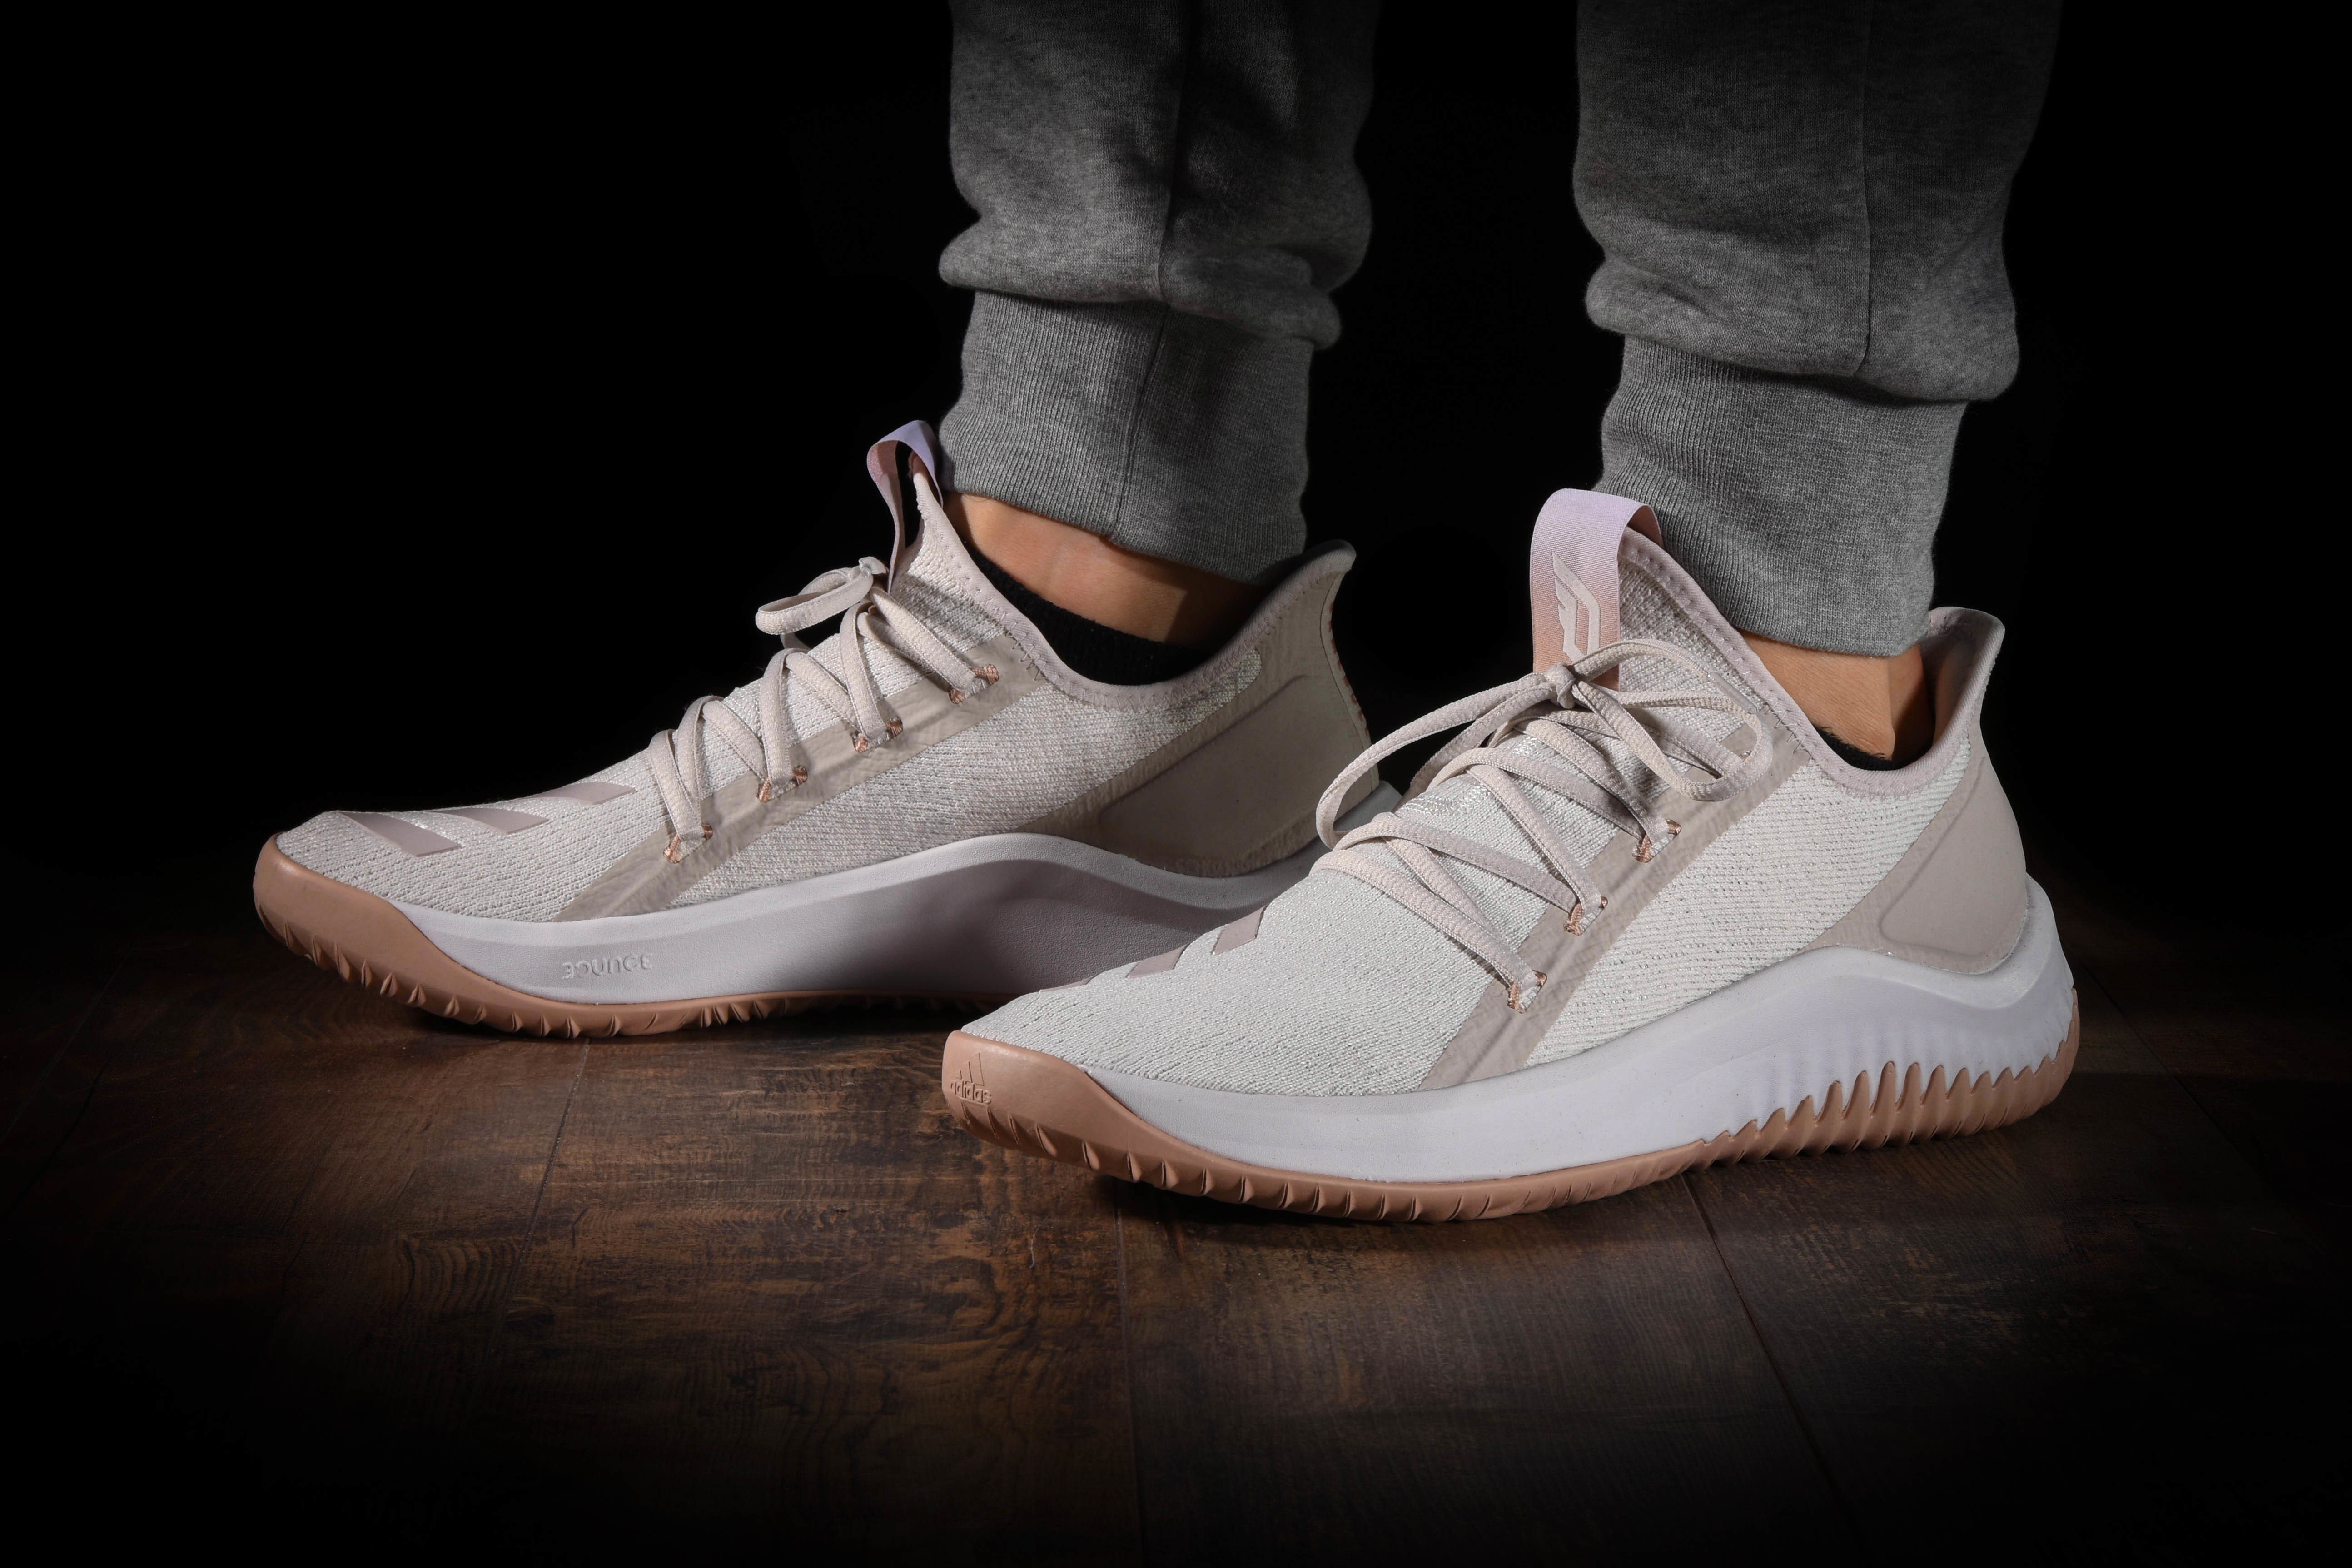 ADIDAS DAME D.O.L.L.A. for £95.00